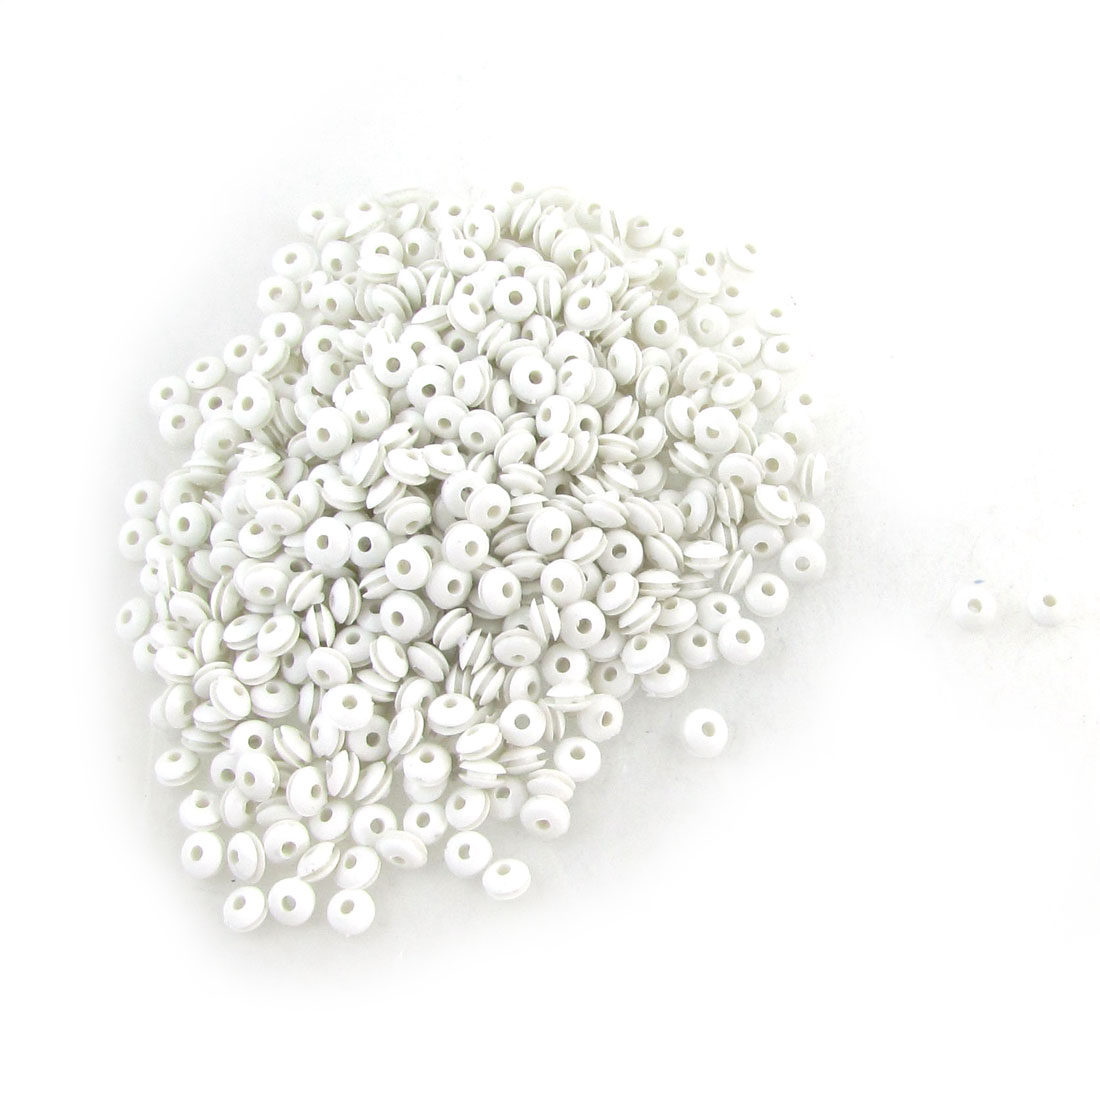 Unique Bargains Unique Bargains 3mm Inside Diameter Armature Bar White Rubber Grommets 1000 Pcs